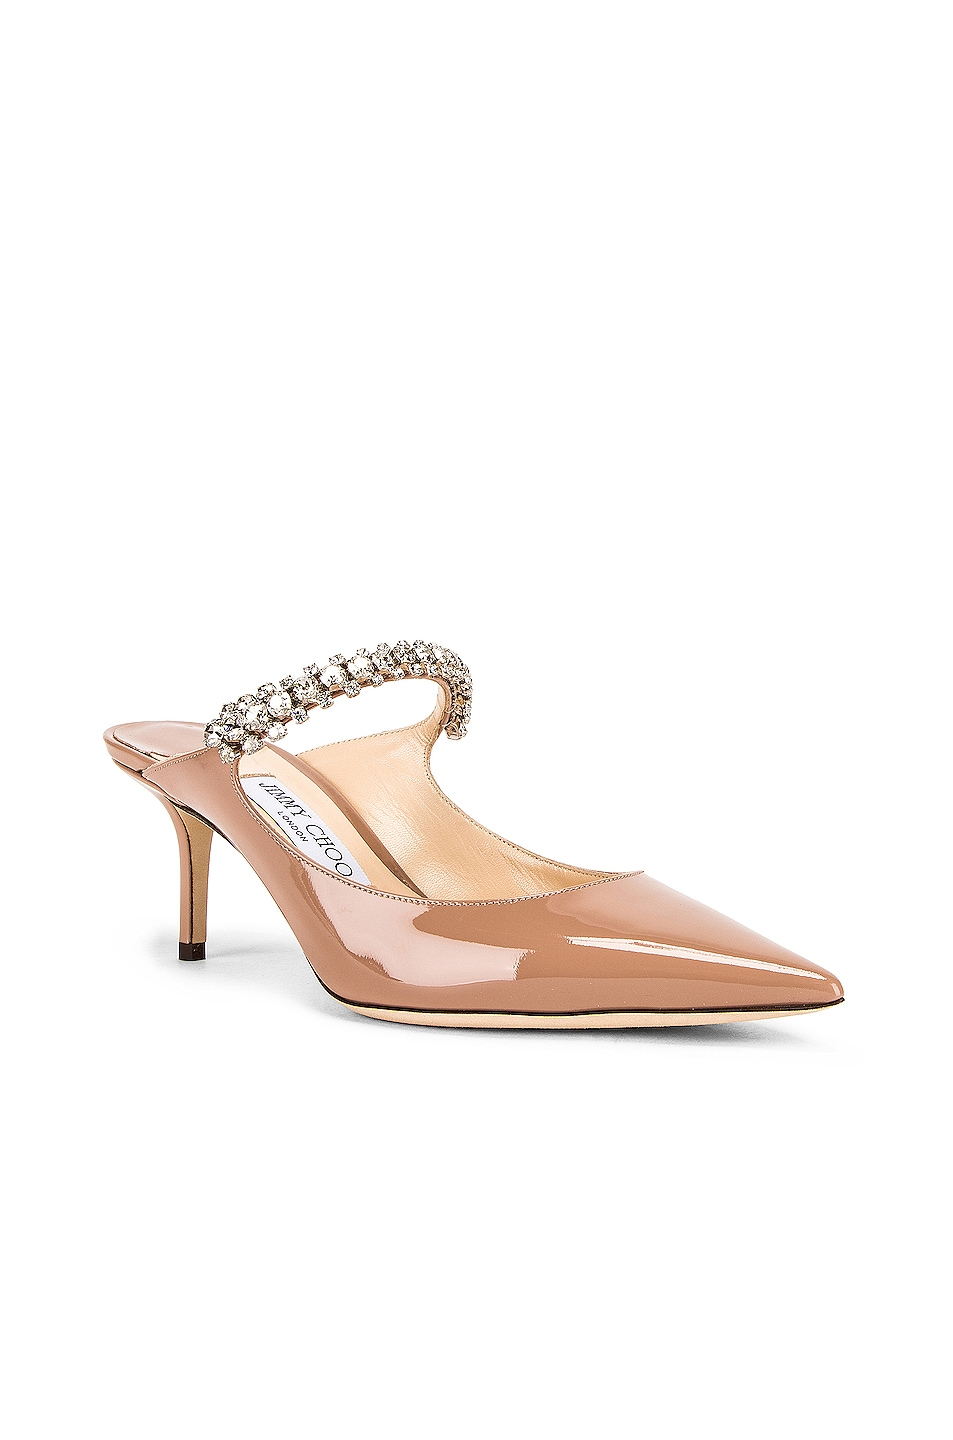 Image 2 of Jimmy Choo Bing 65 Patent Leather Heel in Ballet Pink